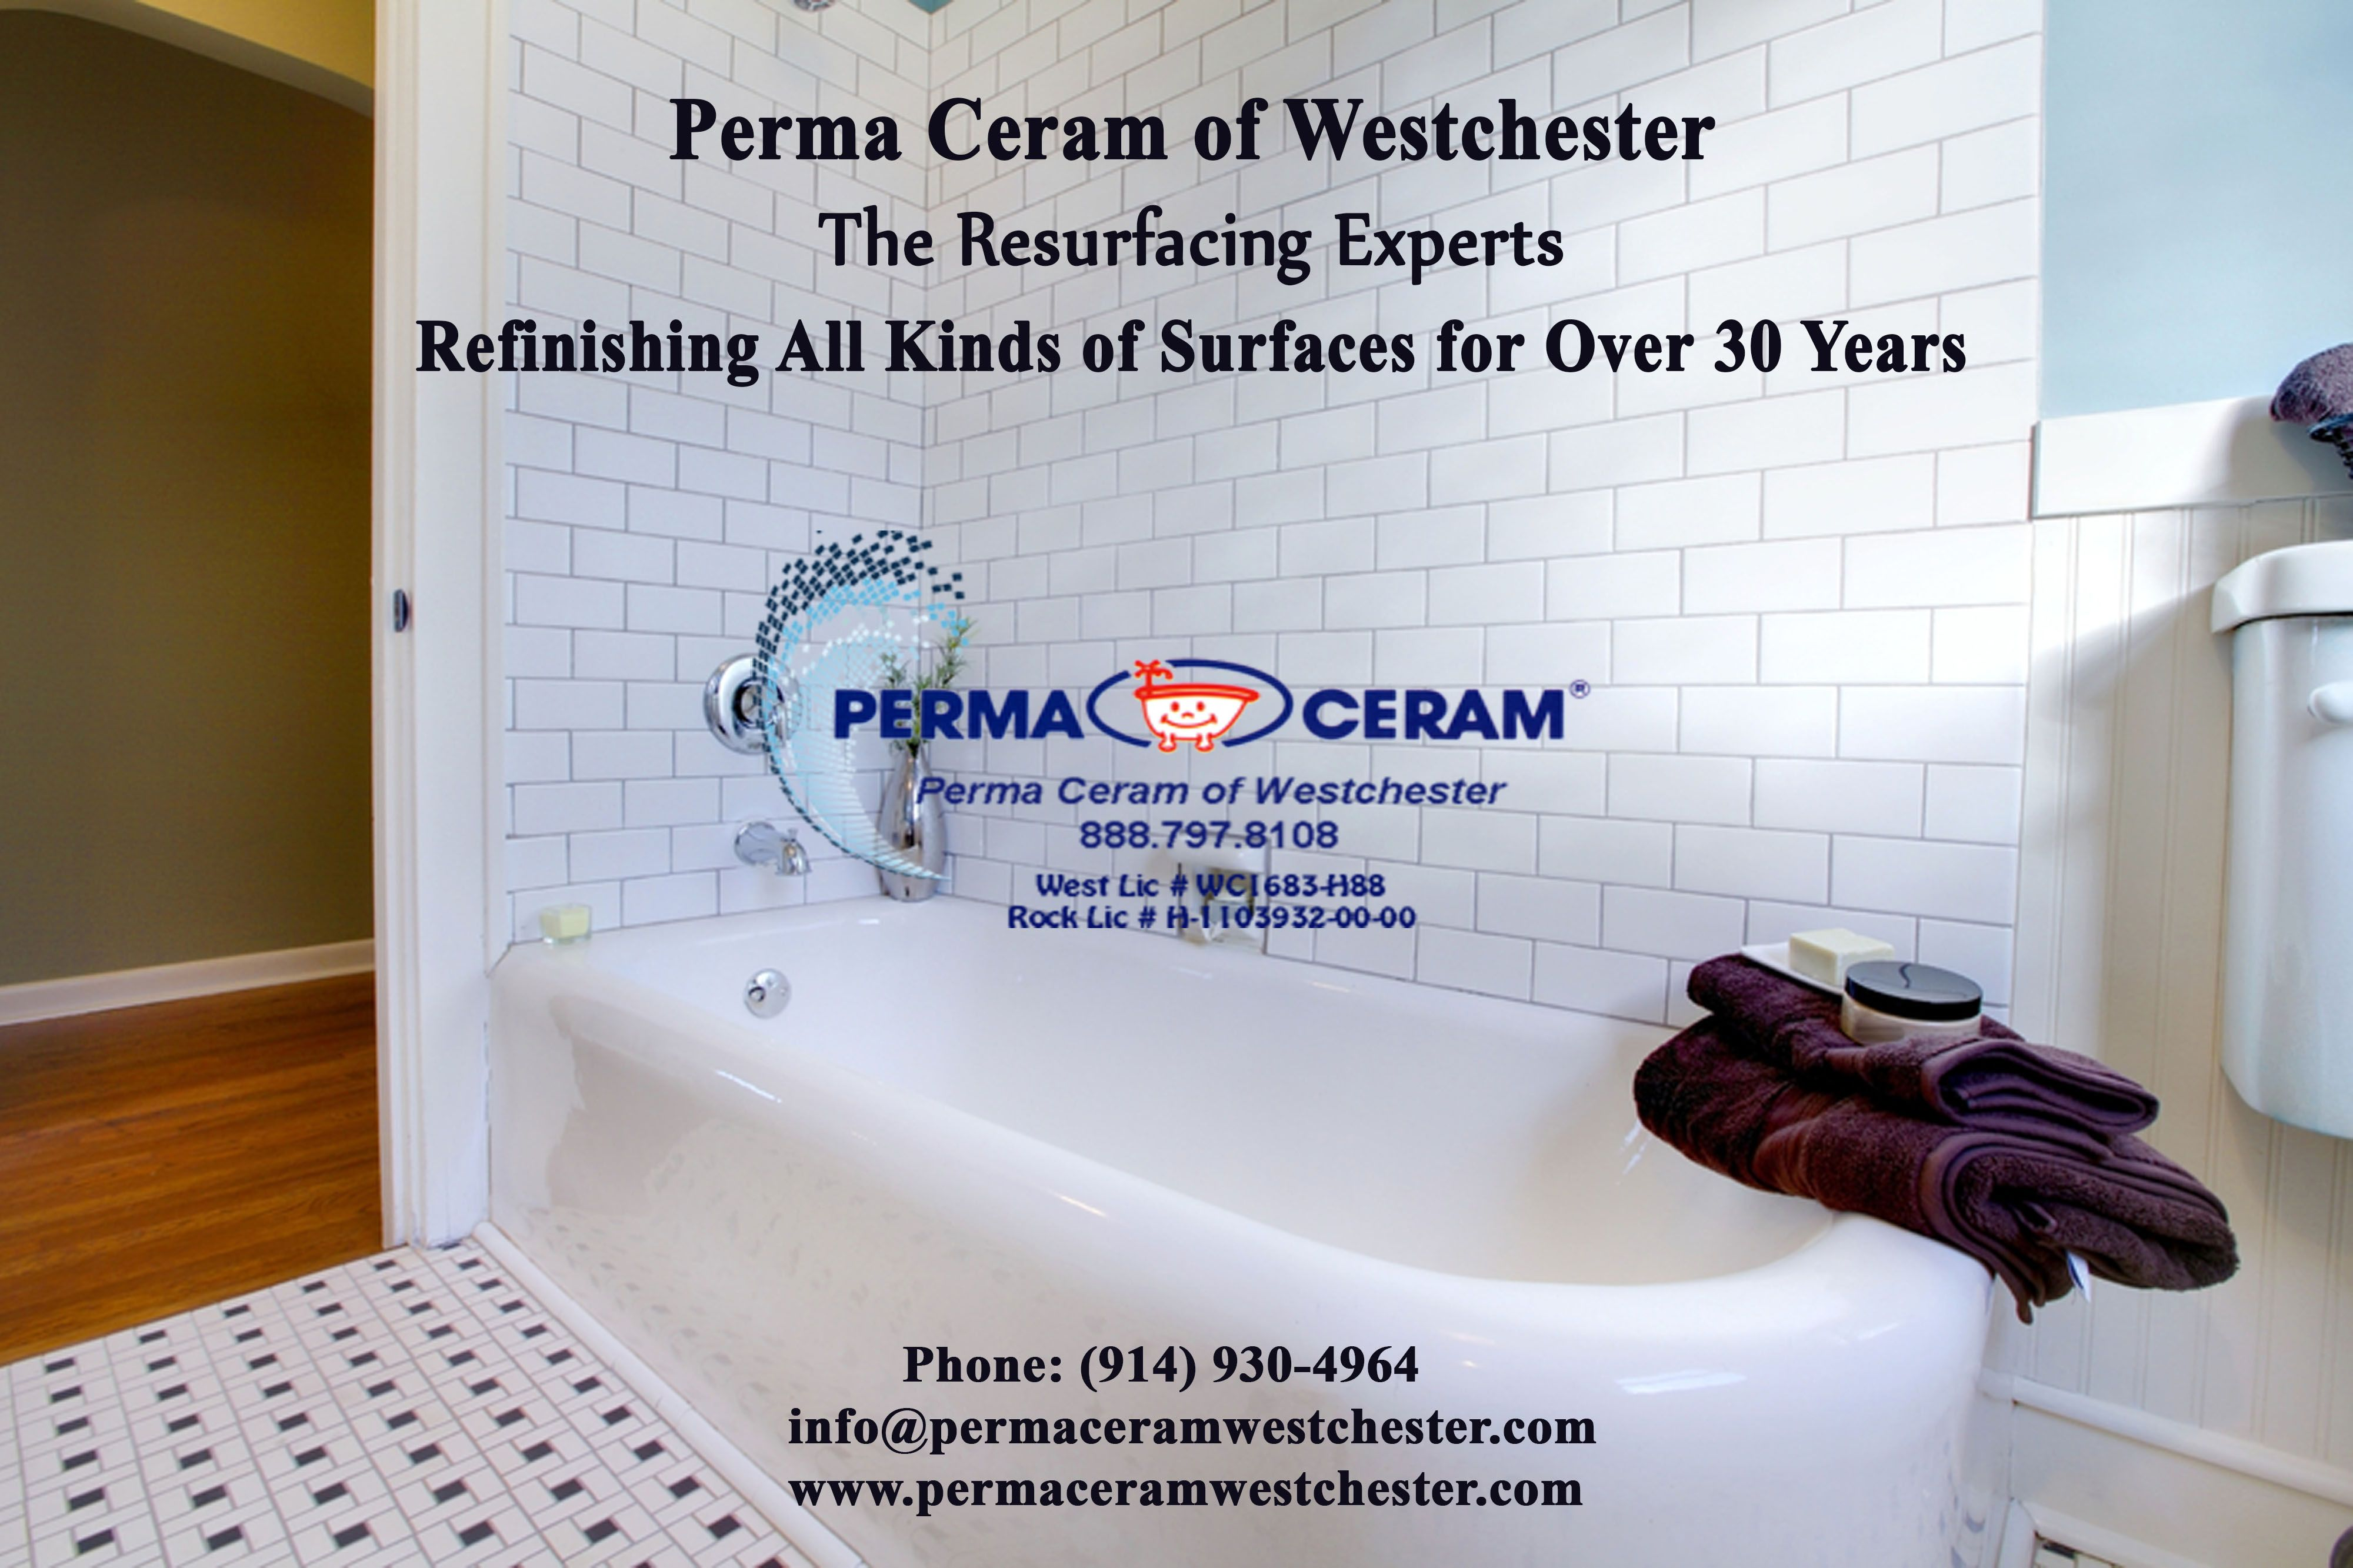 Perma Ceram Of Westchester The Resurfacing Experts Refinishing All